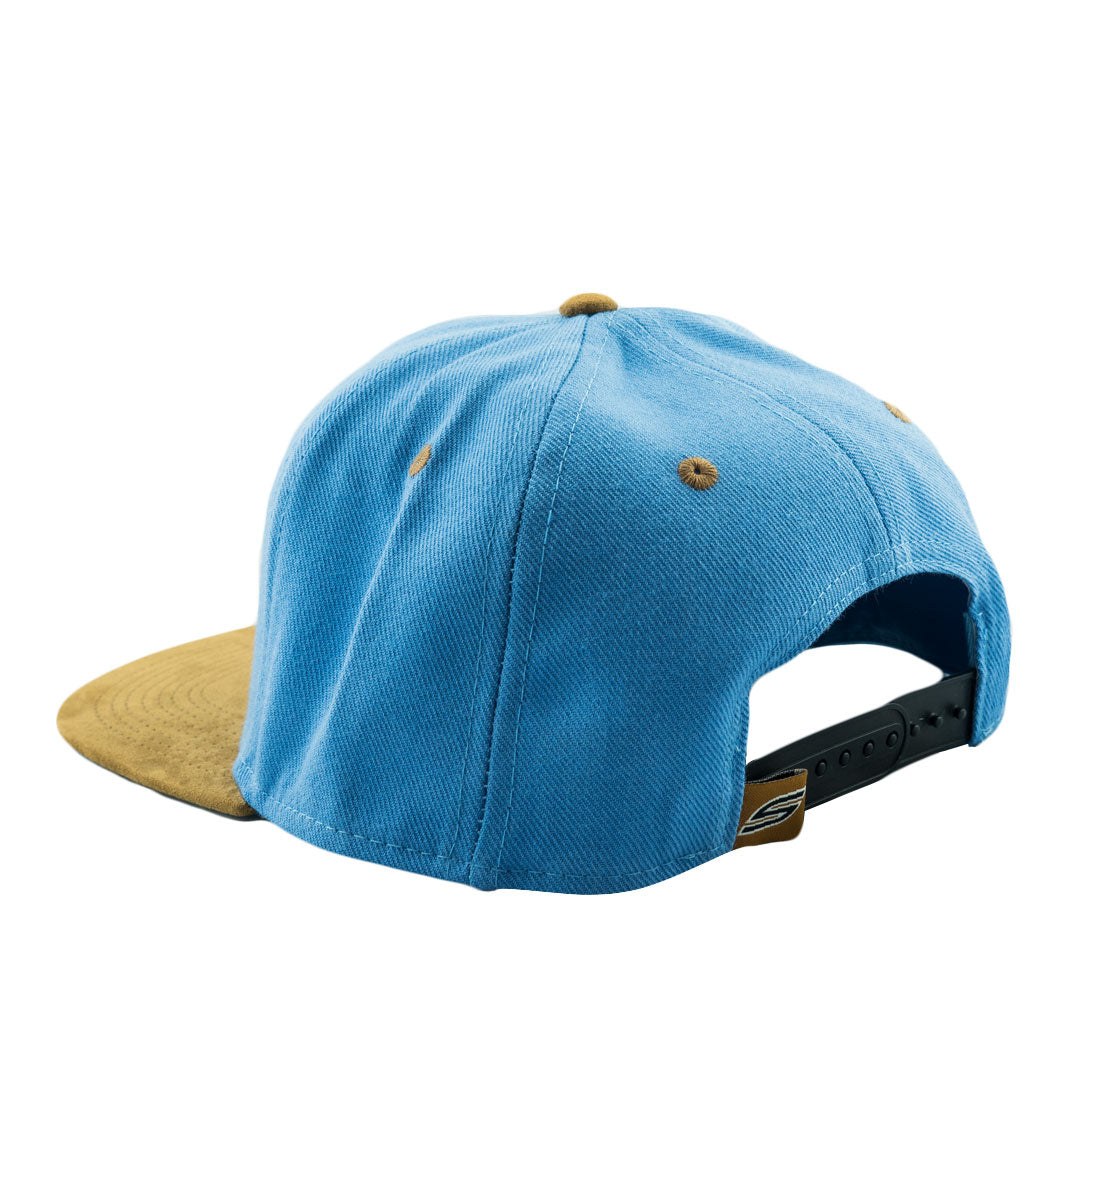 5cebe3183 Social Paintball Snapback Hat - Baby Blue with Tobacco Suede Bill